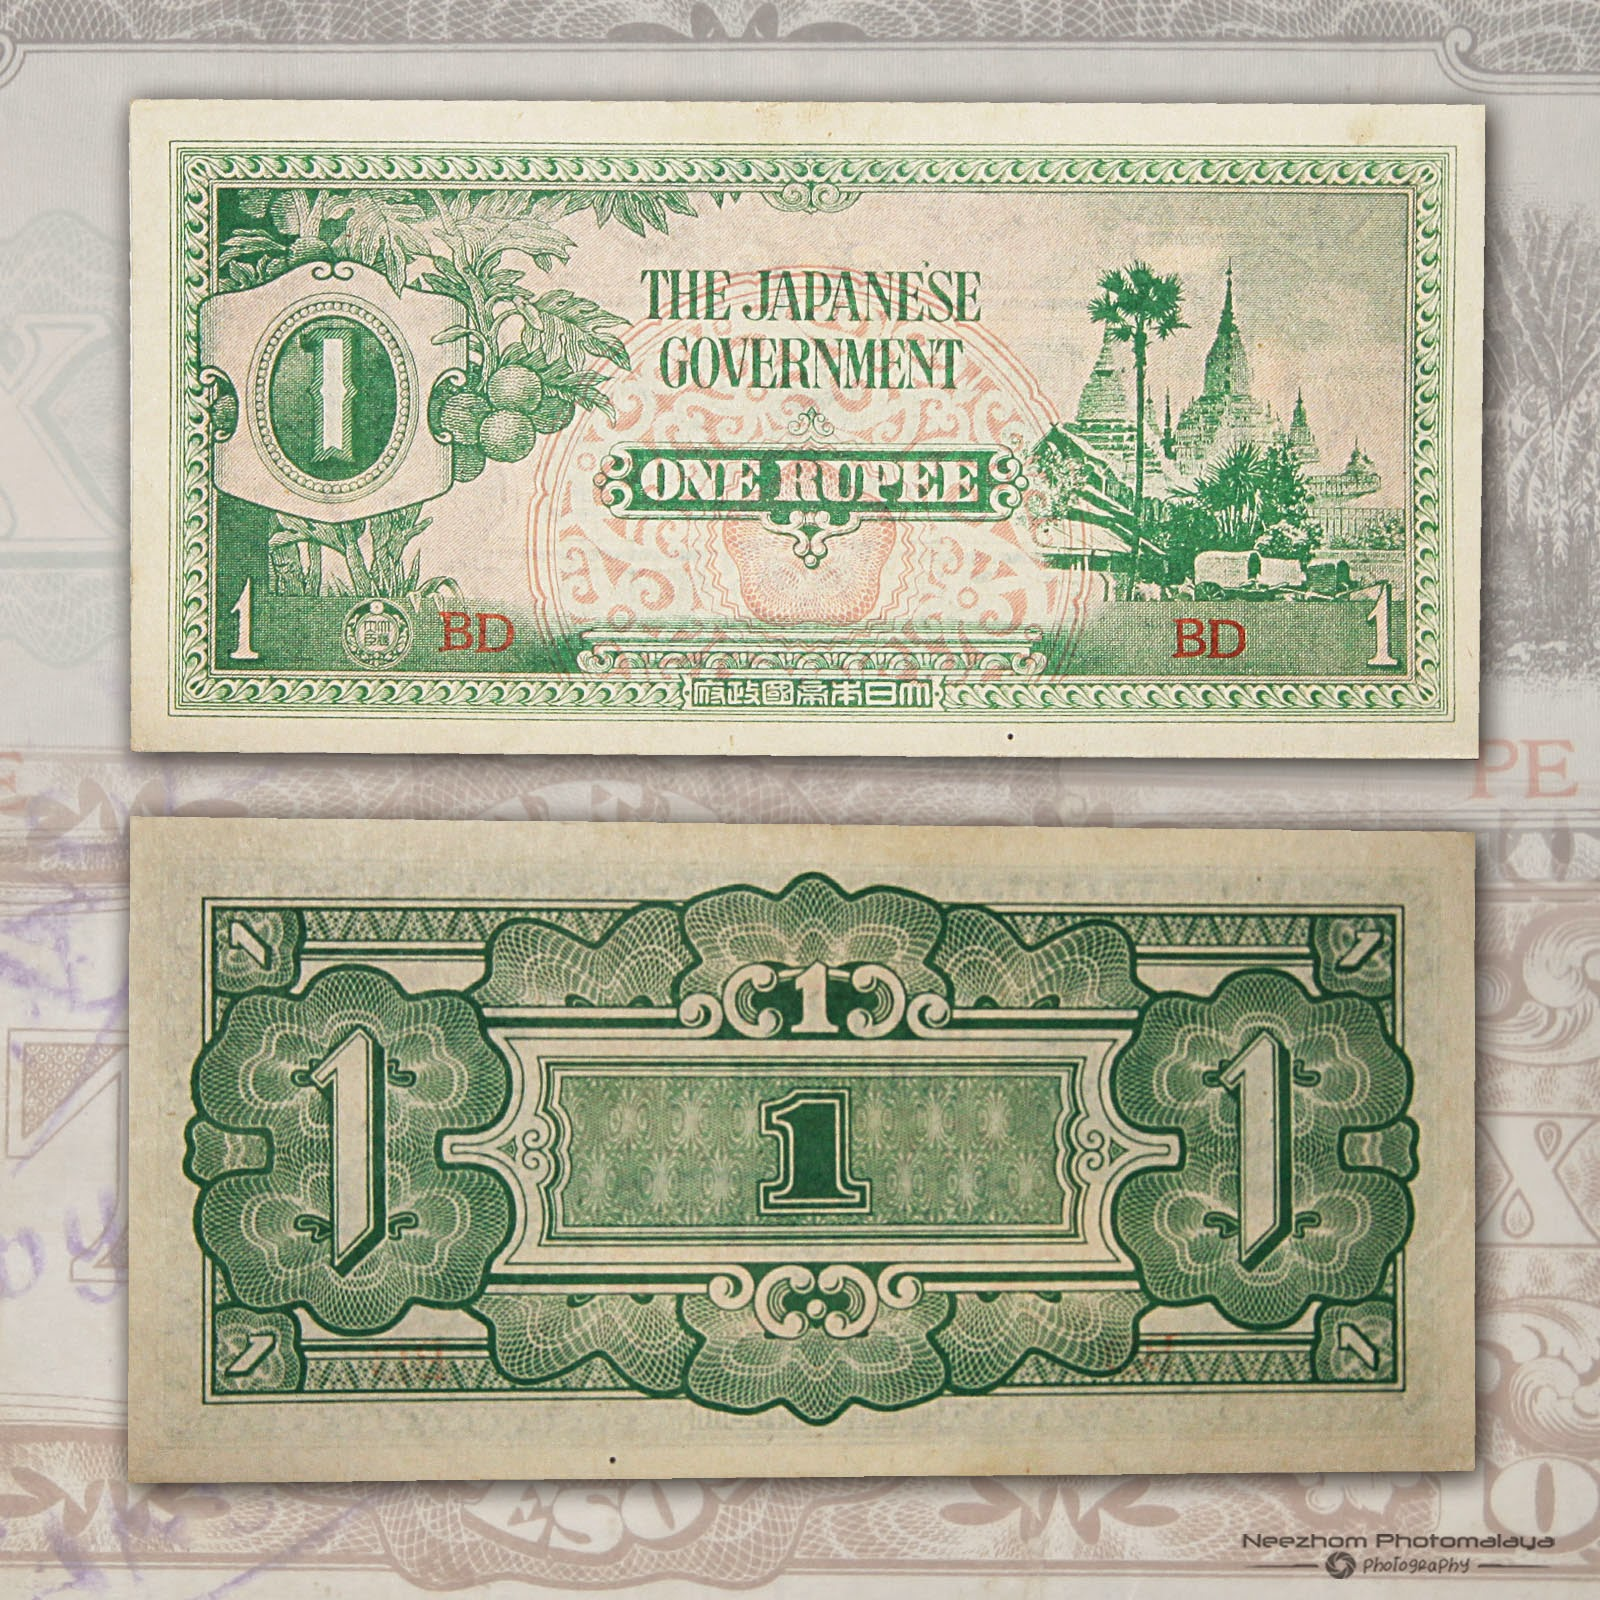 1 Rupee Burma Myanmar 1942 Japanese Occupation